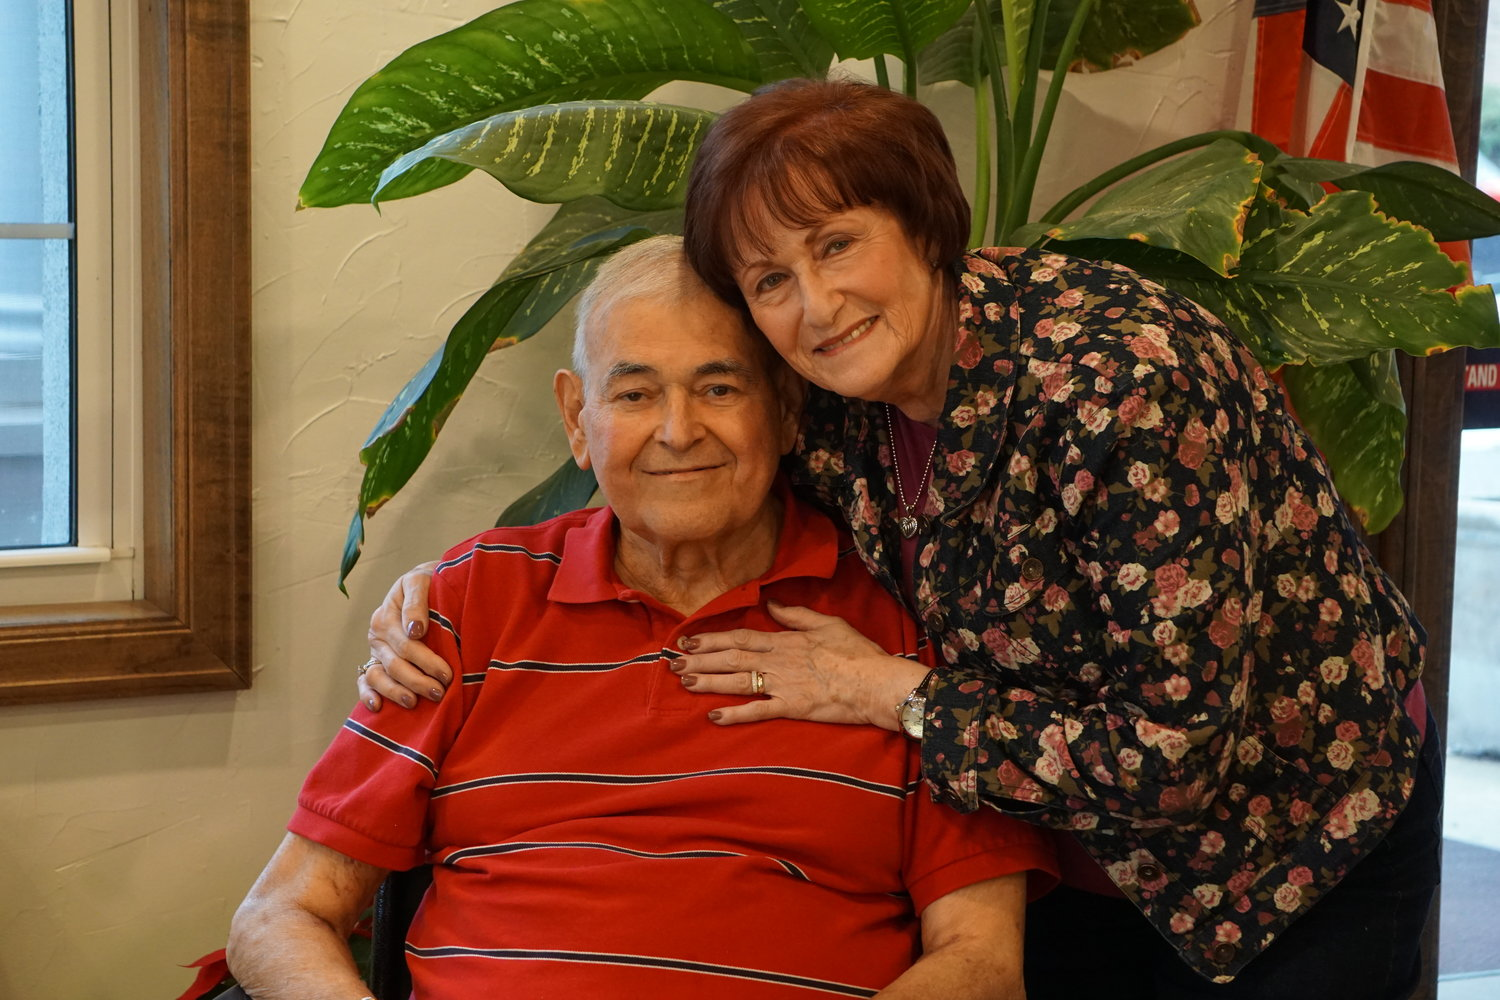 Andrew and Judy Bland were married on June 9, 1968, and will celebrate Valentine's Day together on Feb. 14. Andrew is now getting treated at Lynbrook Restorative Therapy and Nursing.